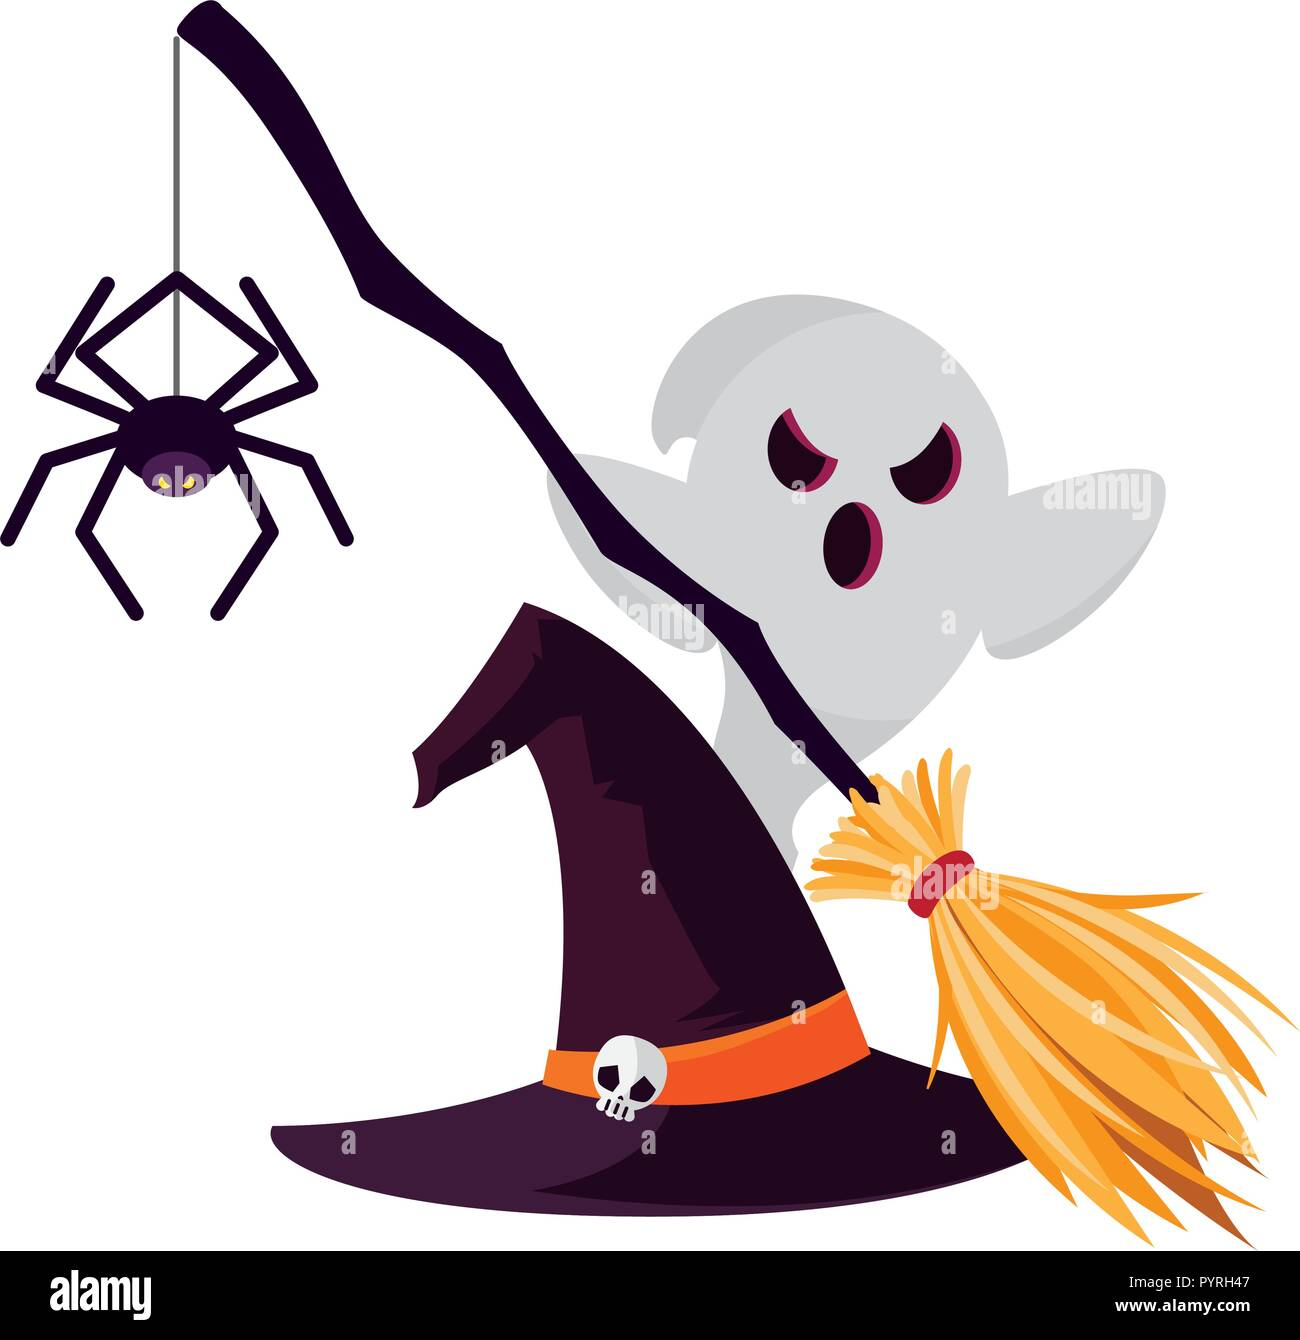 Halloween Witch Broom Icon Vector Illustration Design Stock Vector Image Art Alamy